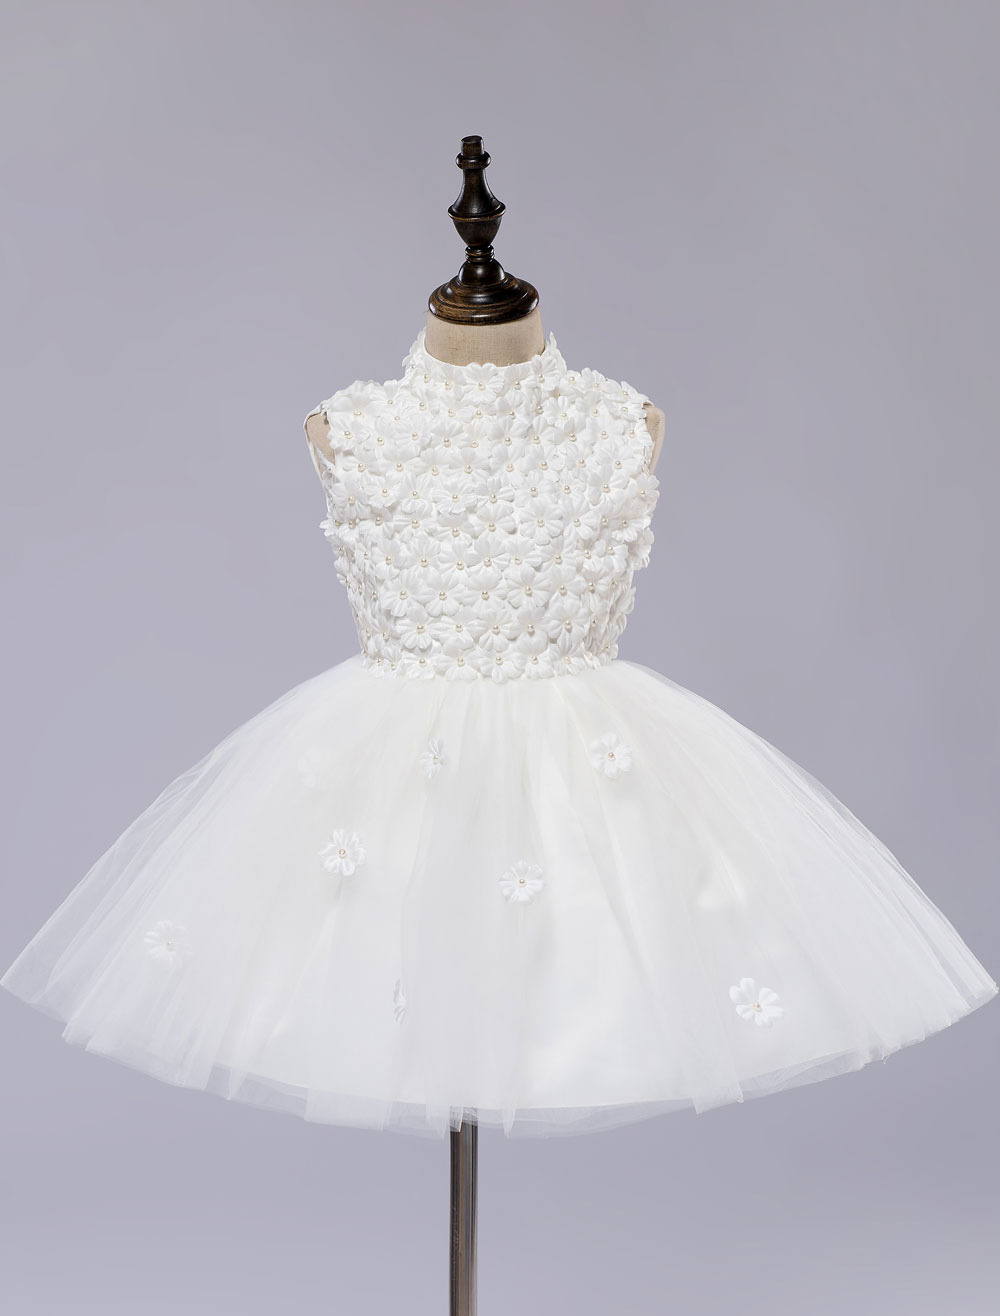 Flower Girl's Dress White Toddler's Pageant Tutu Dress With Lace Flower Applique